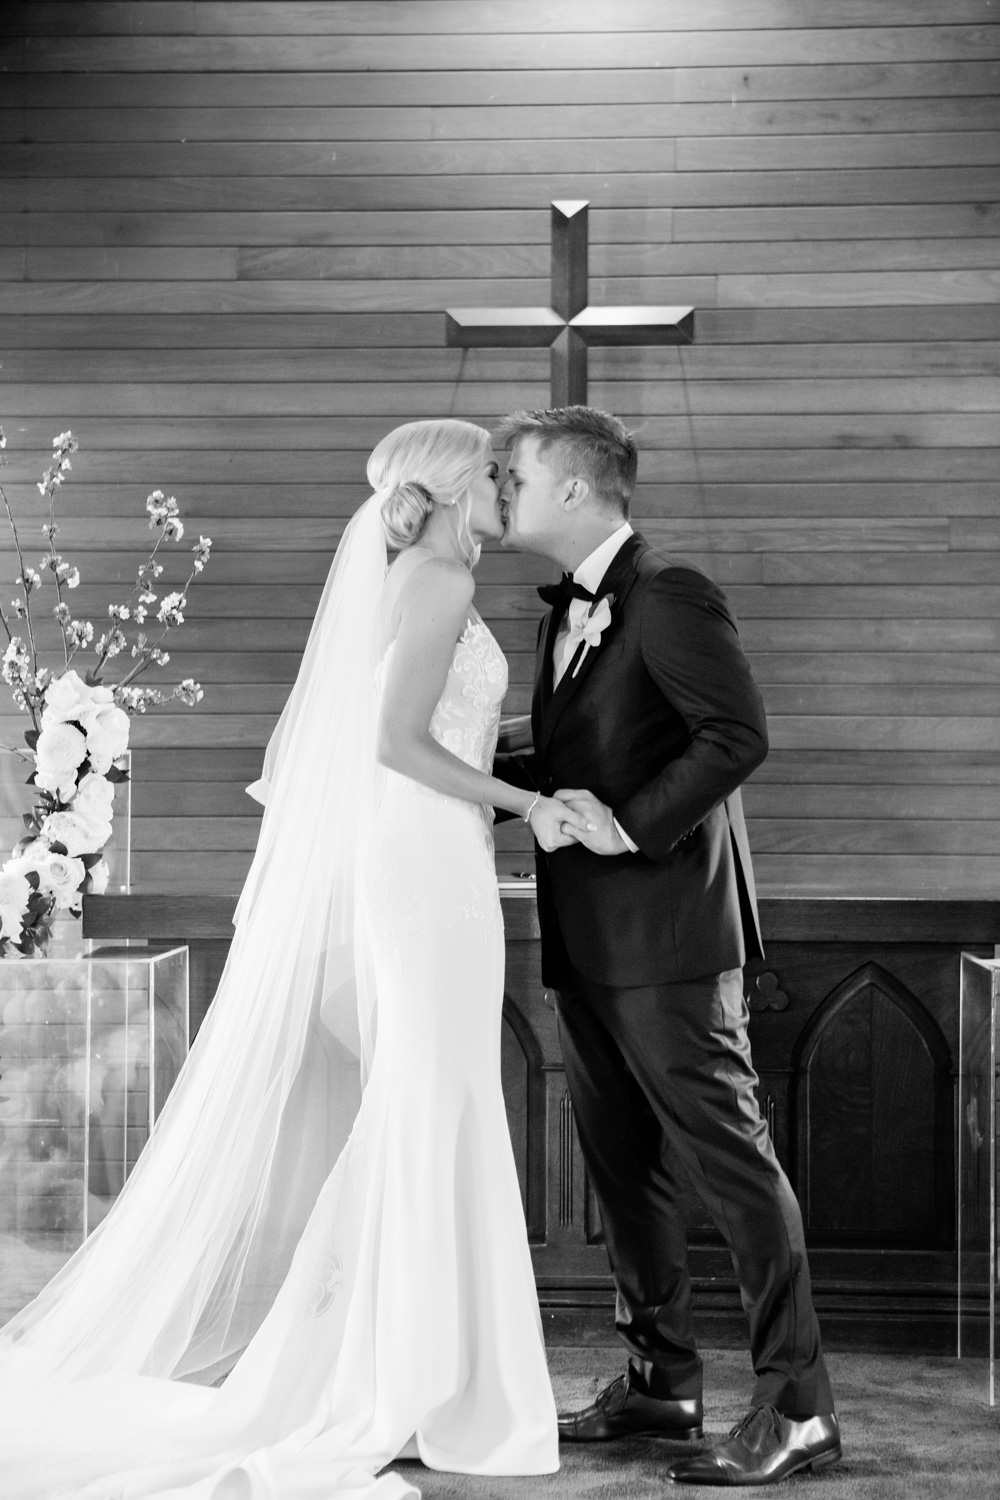 wedding-0126-chapel-kiss-excitement-official-veil-australia.jpg